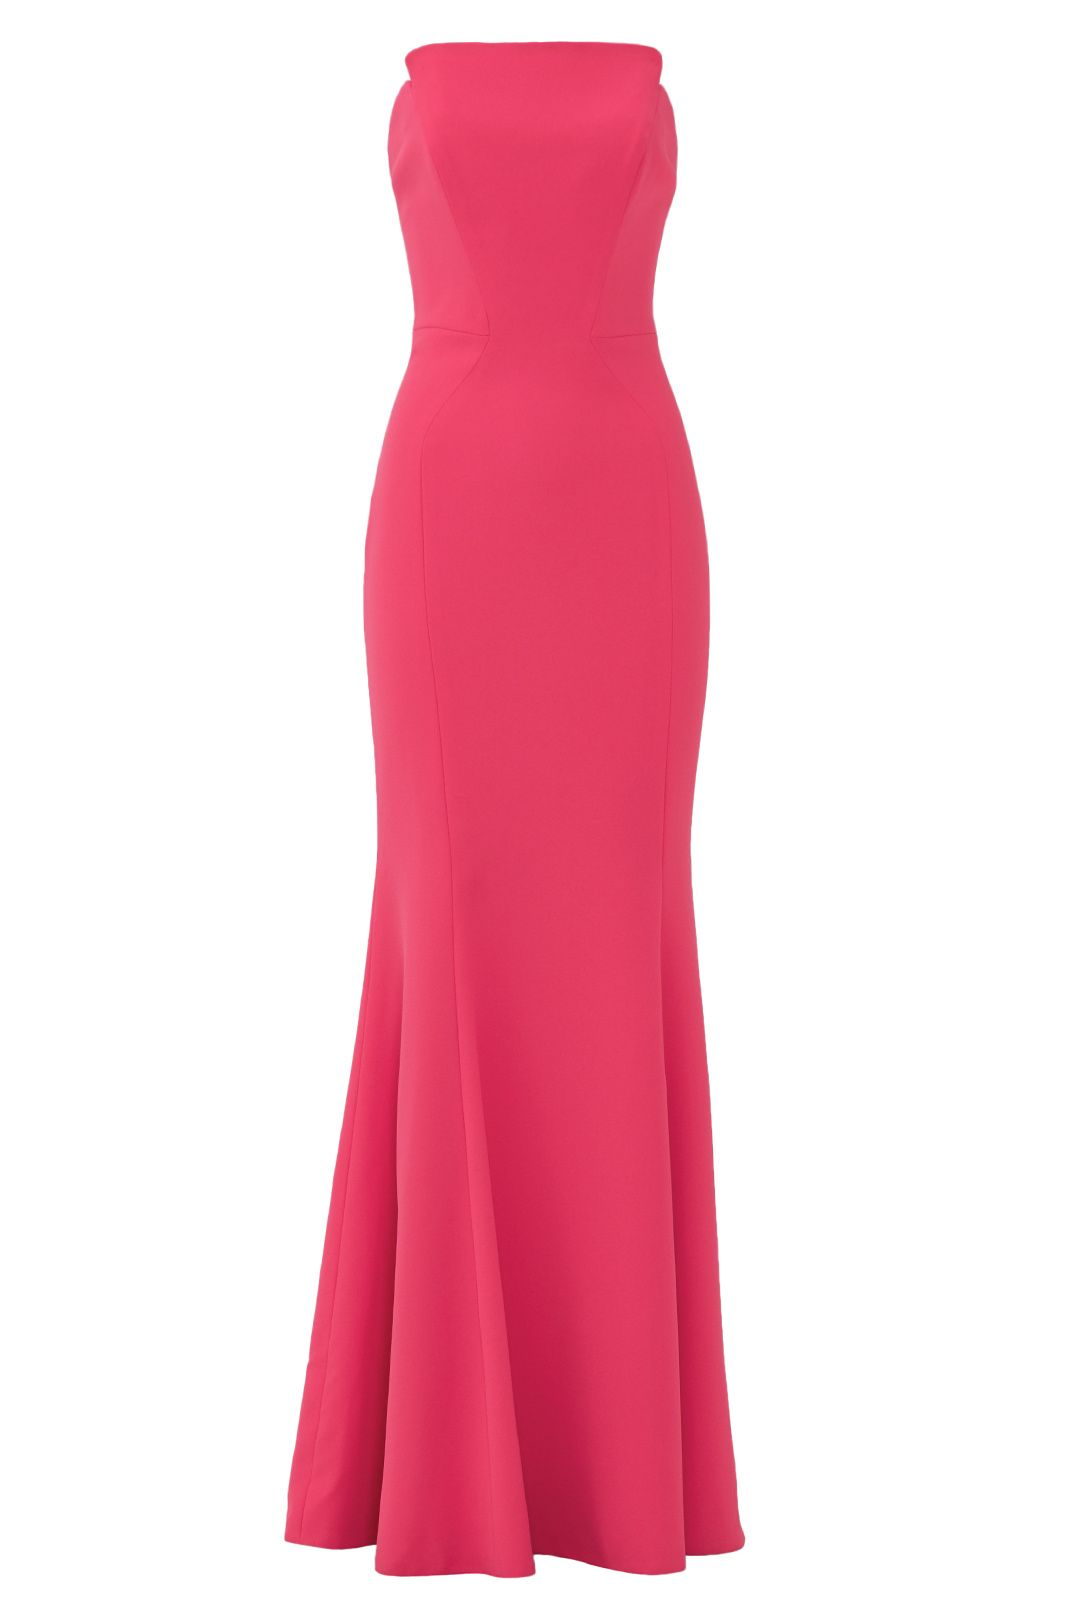 Peony strapless gown strapless gown